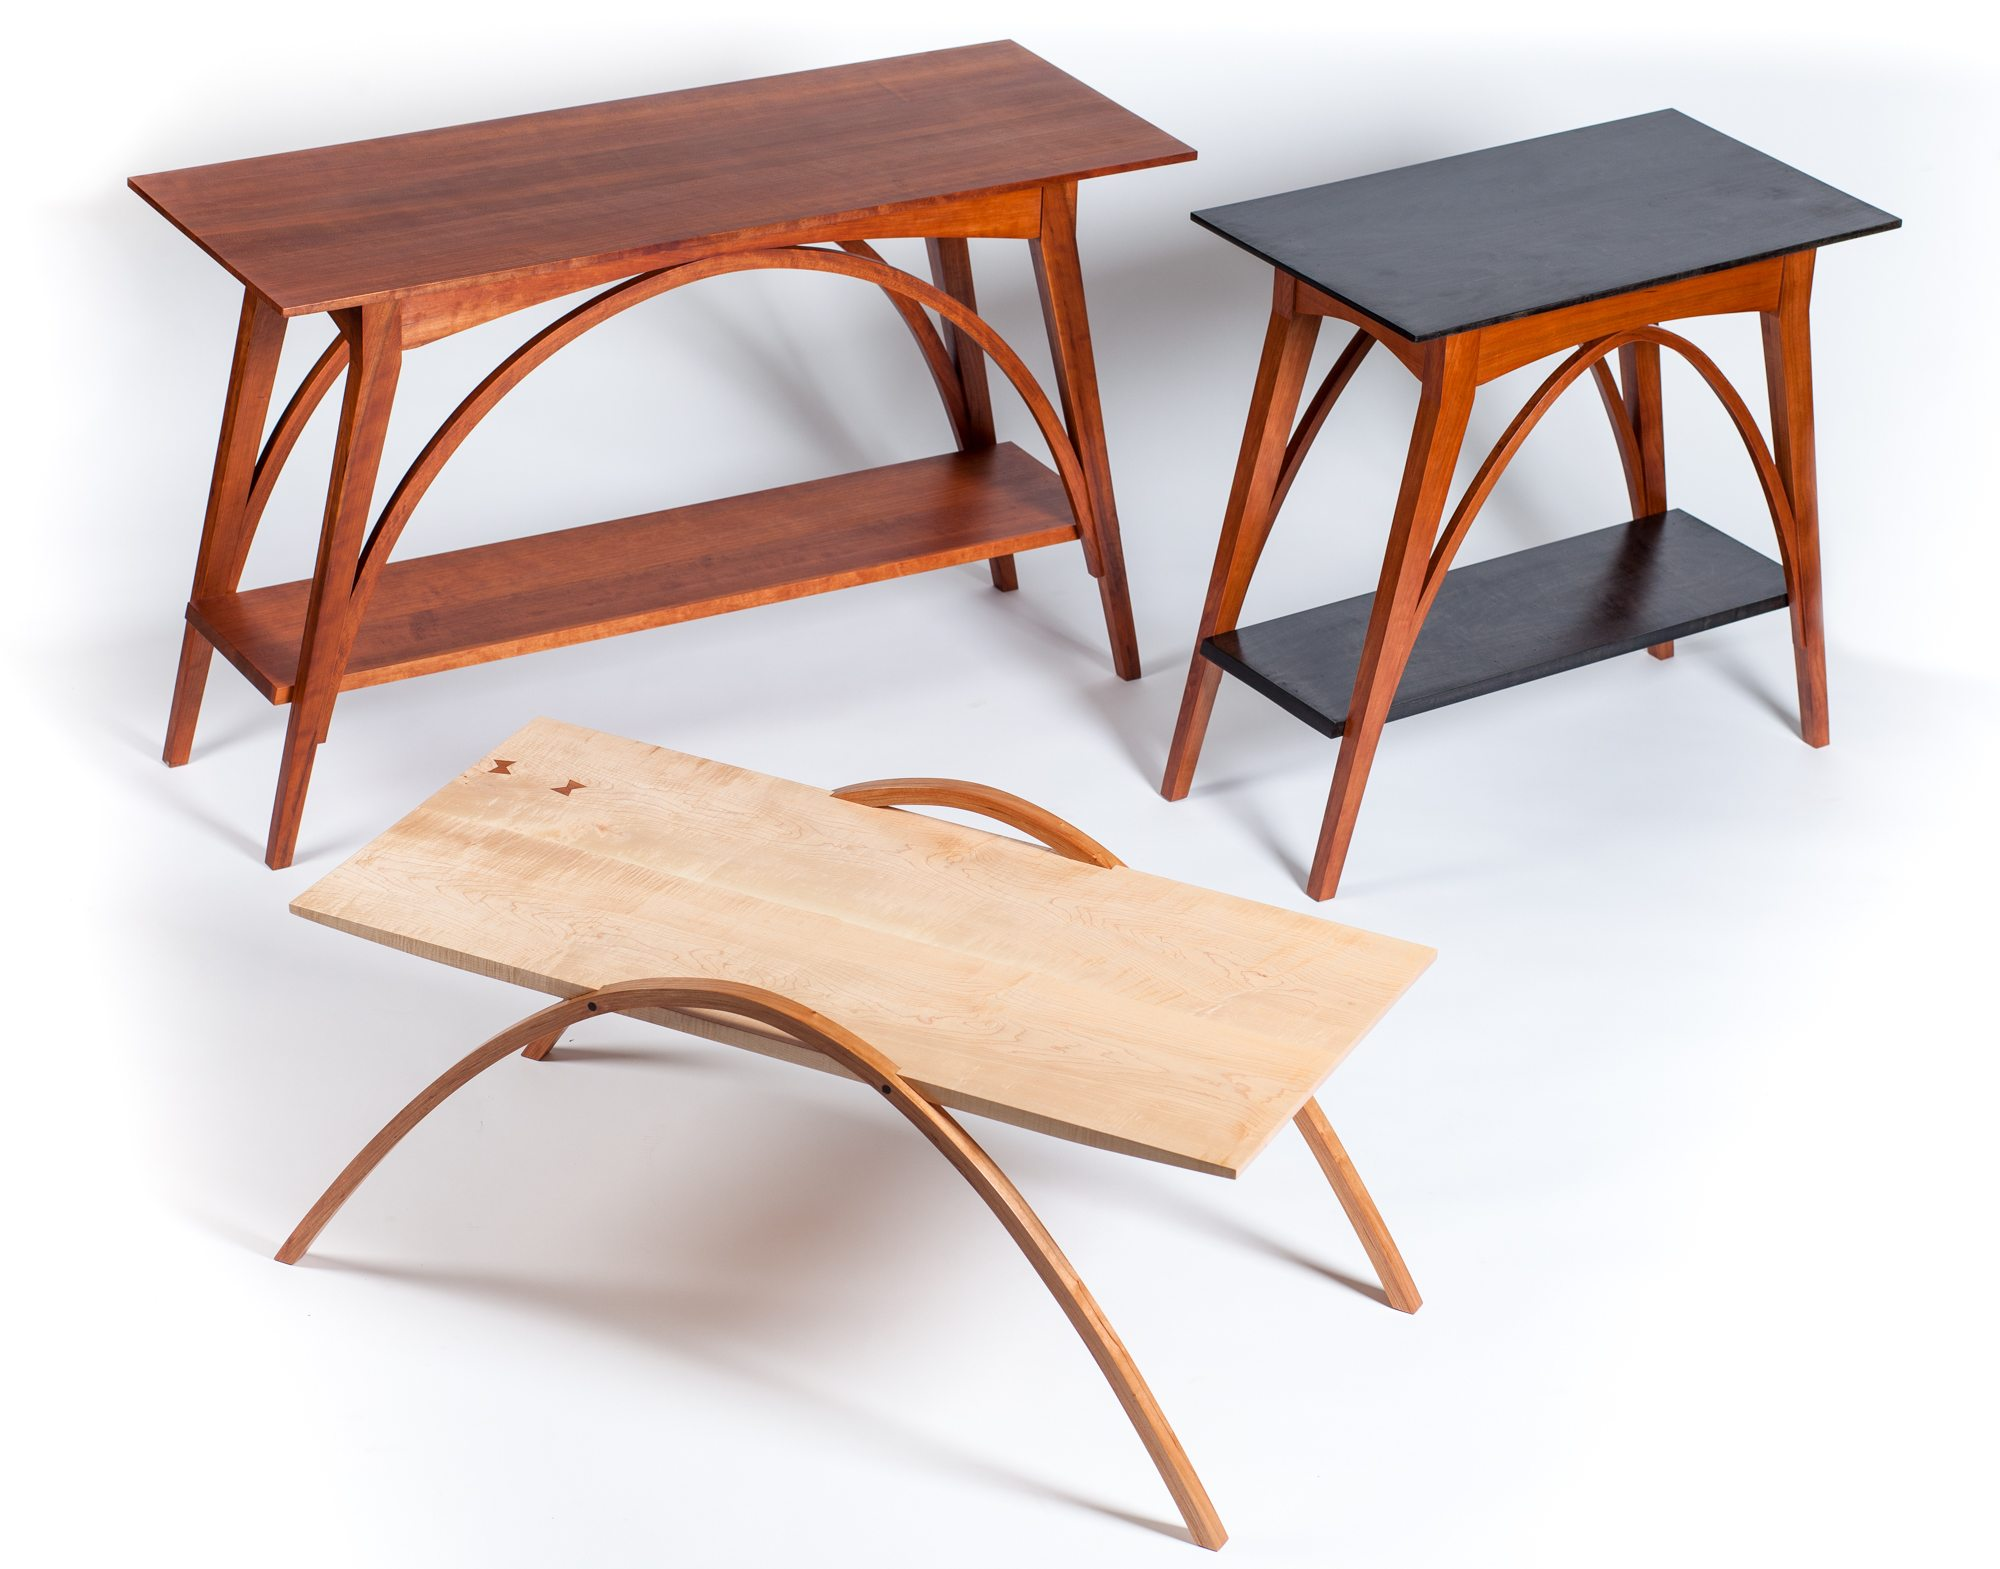 Wood Tables | Custom Wood Furniture | STUDIORossi